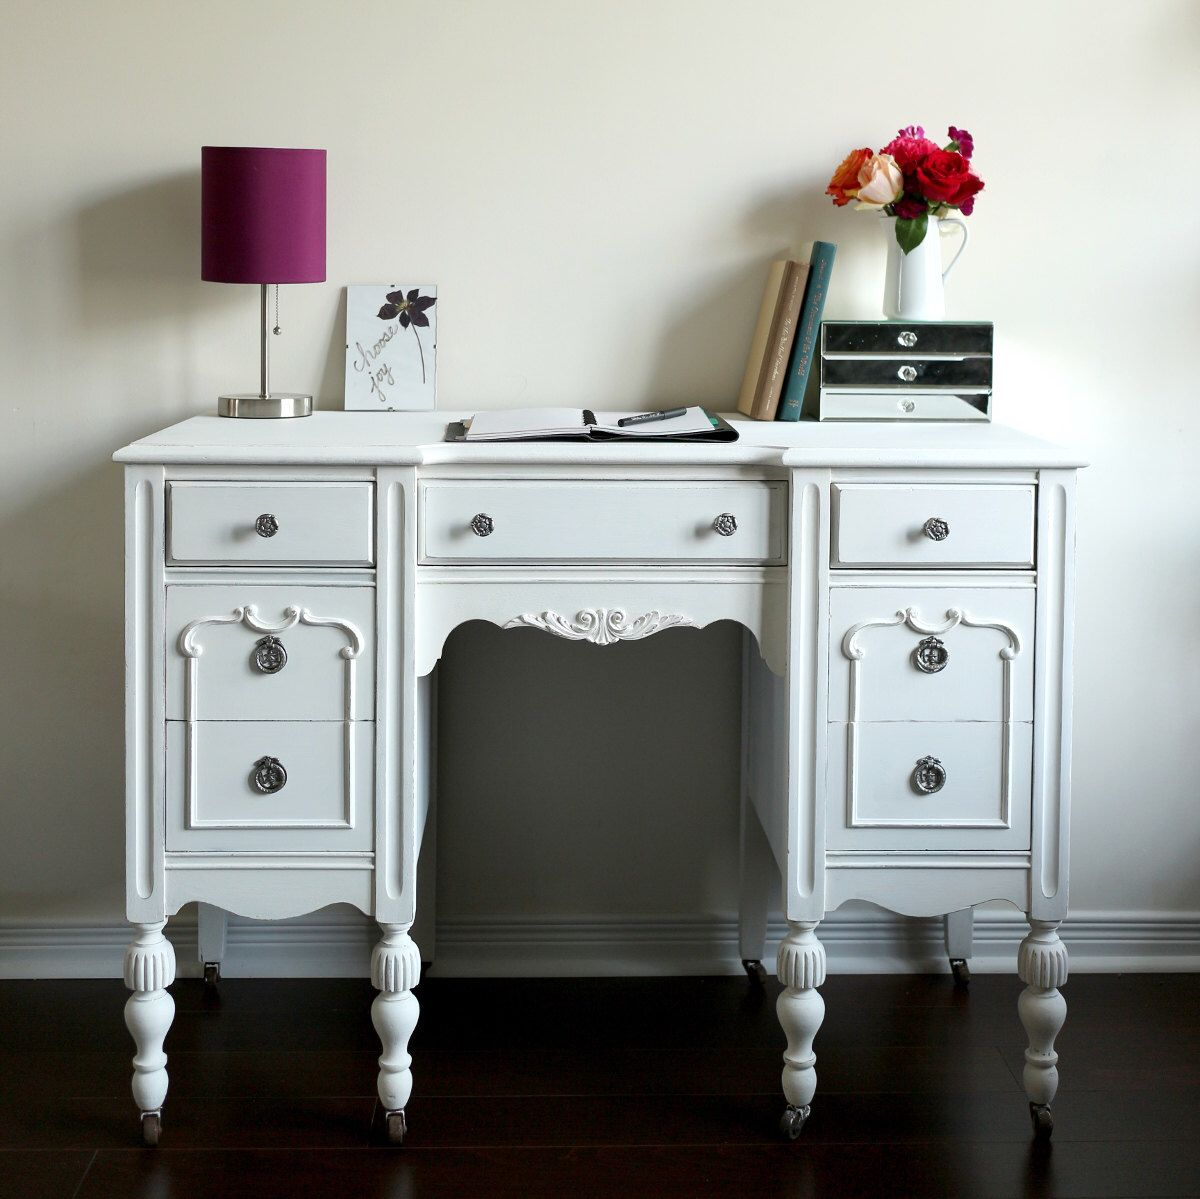 Antique Desk Vanity White Shabby Chic Furniture Home Office Vintage Chalk Painted